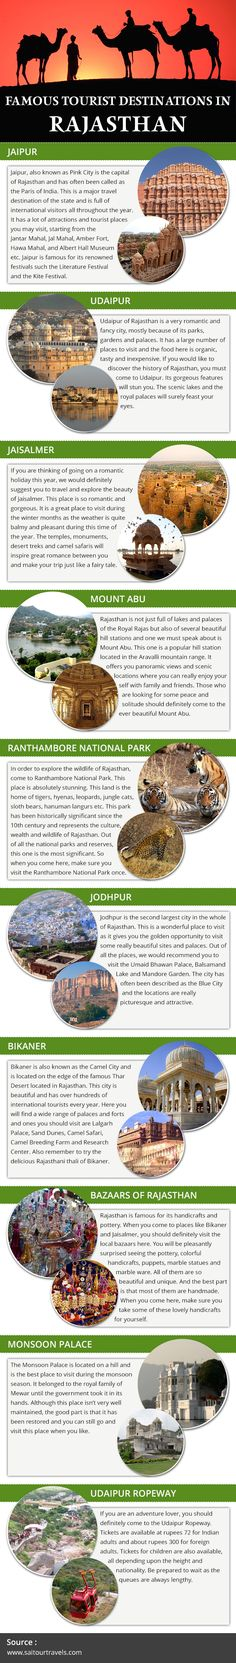 Check out the Latest #Infographic of Sai Tour & Travels. Visit: http://visual.ly/famous-tourist-destinations-rajasthan    #Travel #Chandigarh #Mohali #Panchkula #Taxiservice #Touroperator